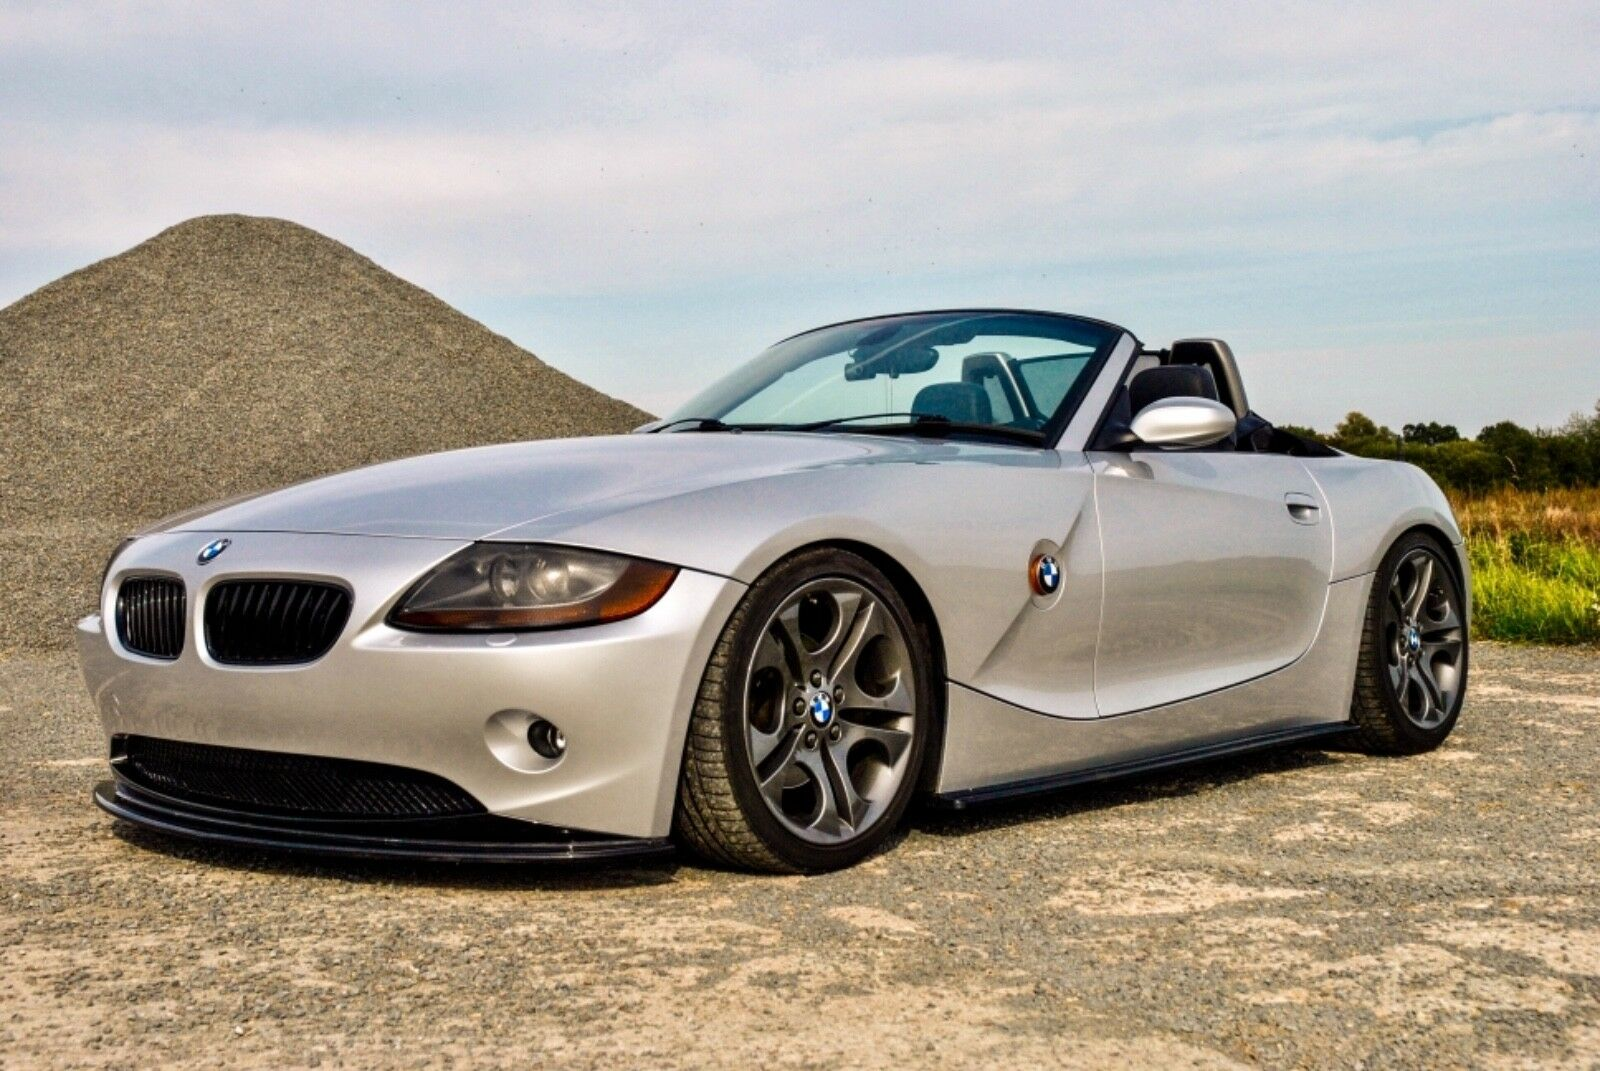 2003 Bmw Z4 3 0i Manual 67k Milage Outstanding